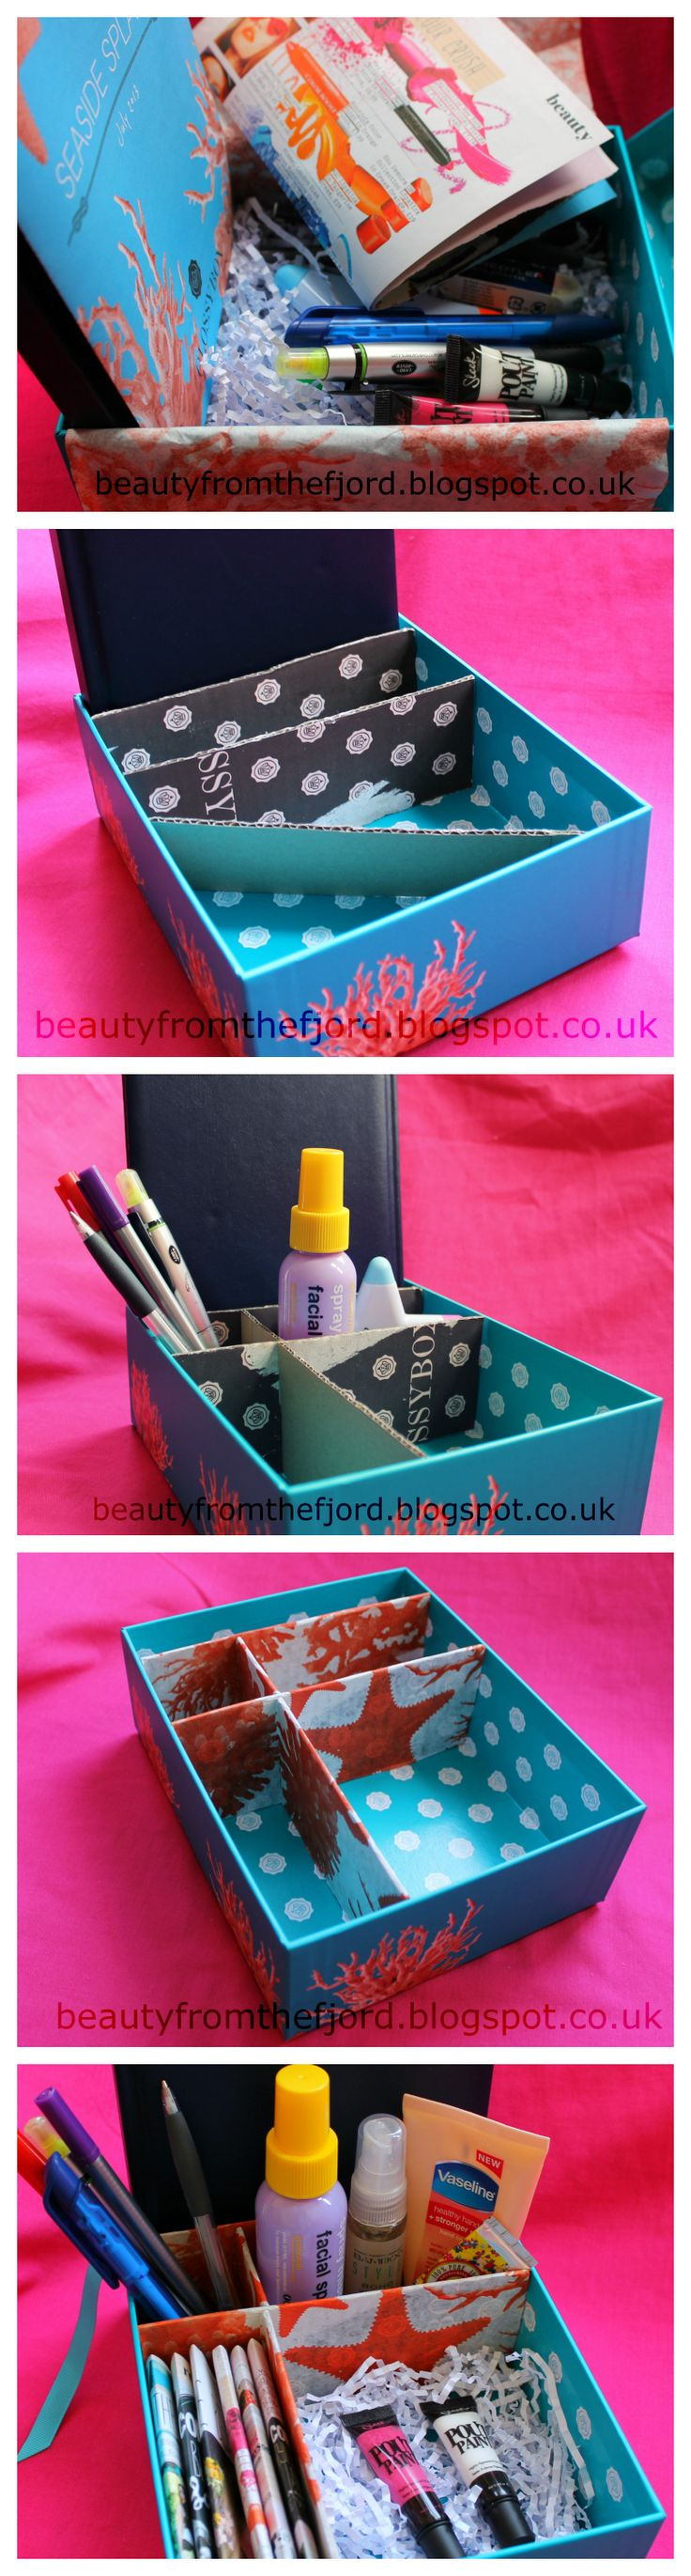 If you are a beauty blogger, you might want one of these with compartments for: notebook, pens, beauty refreshers, inspirations  current review item. I used Glossybox, but you can use any box. Details here: http://beautyfromthefjord.blogspot.co.uk/2013/07/glossybox-diy-3-beauty-bloggers-storage.html